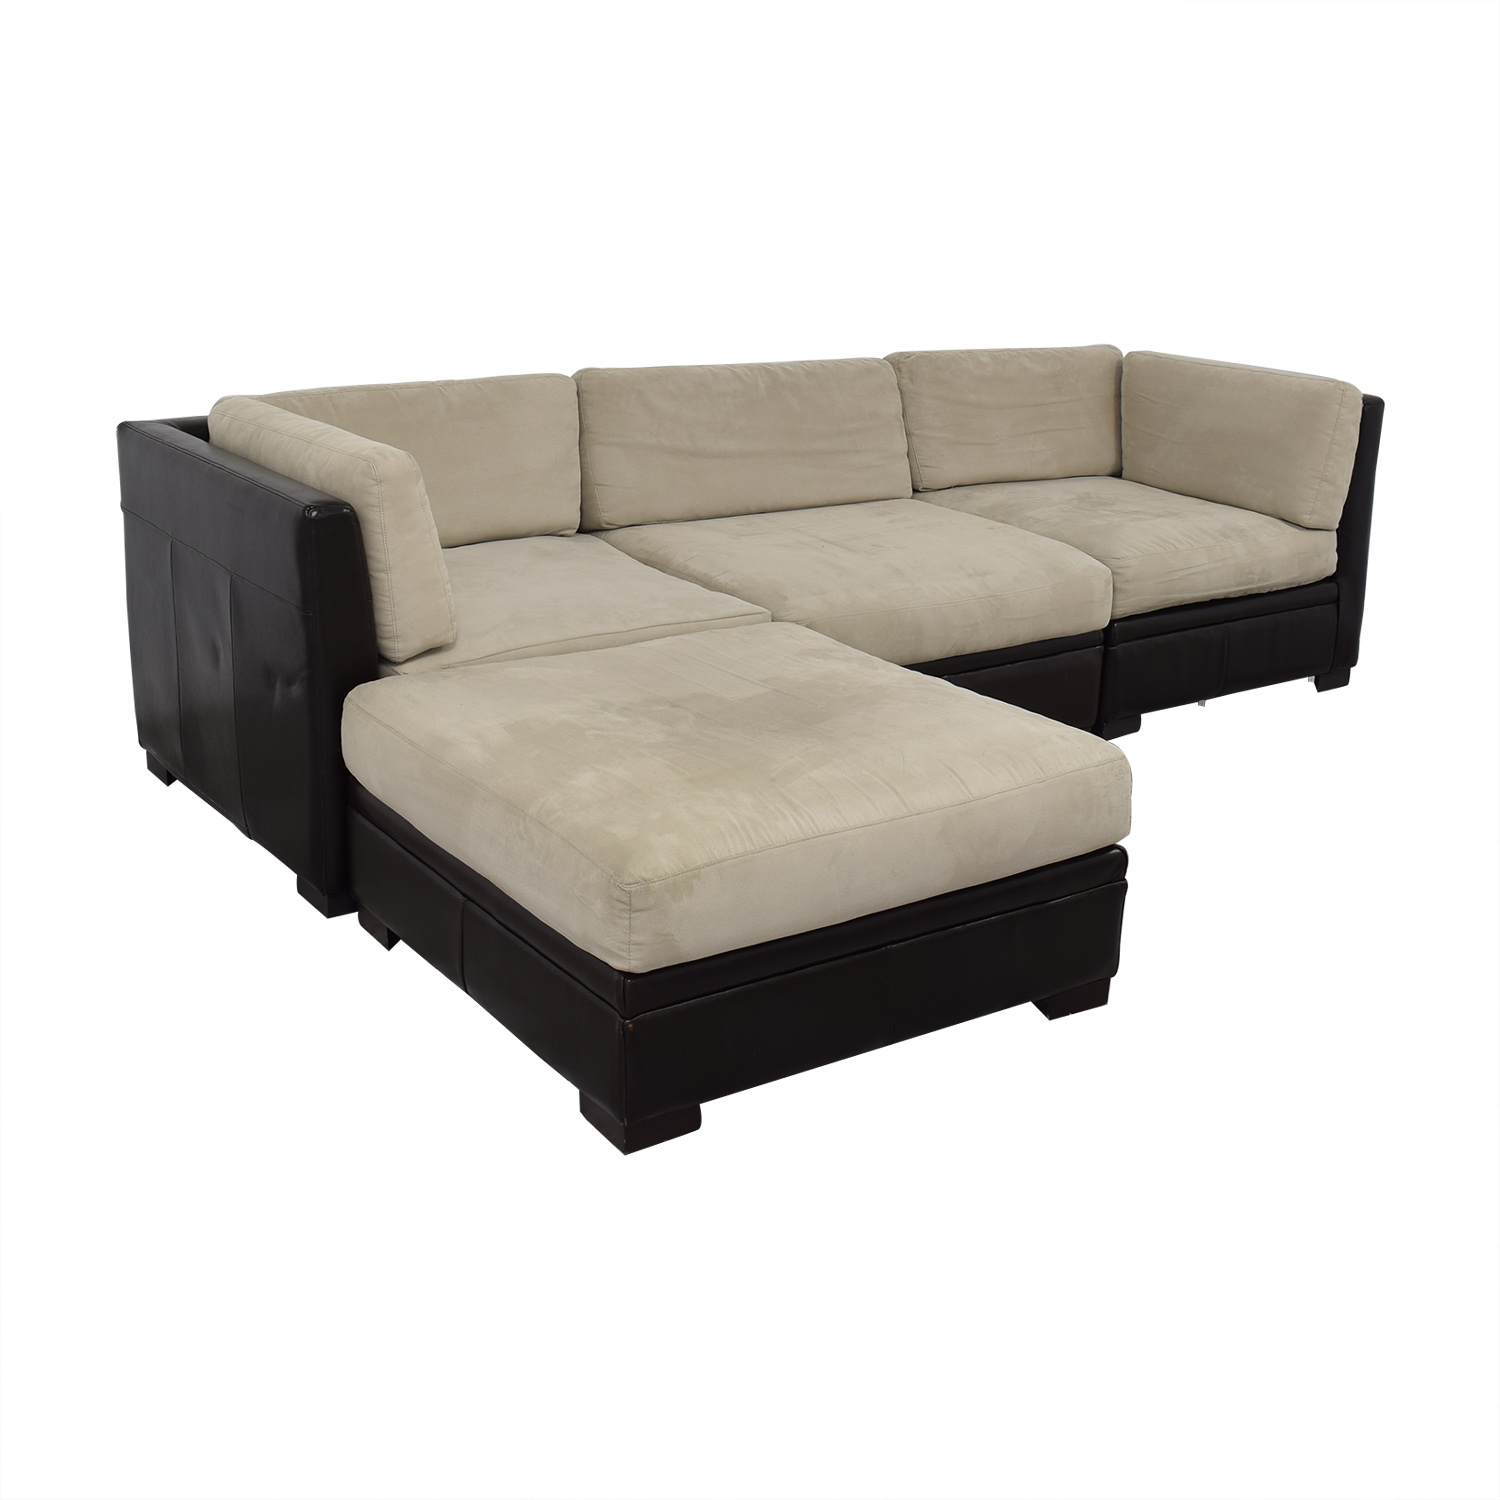 Strange 53 Off Macys Macys Sectional With Ottoman Sofas Gmtry Best Dining Table And Chair Ideas Images Gmtryco